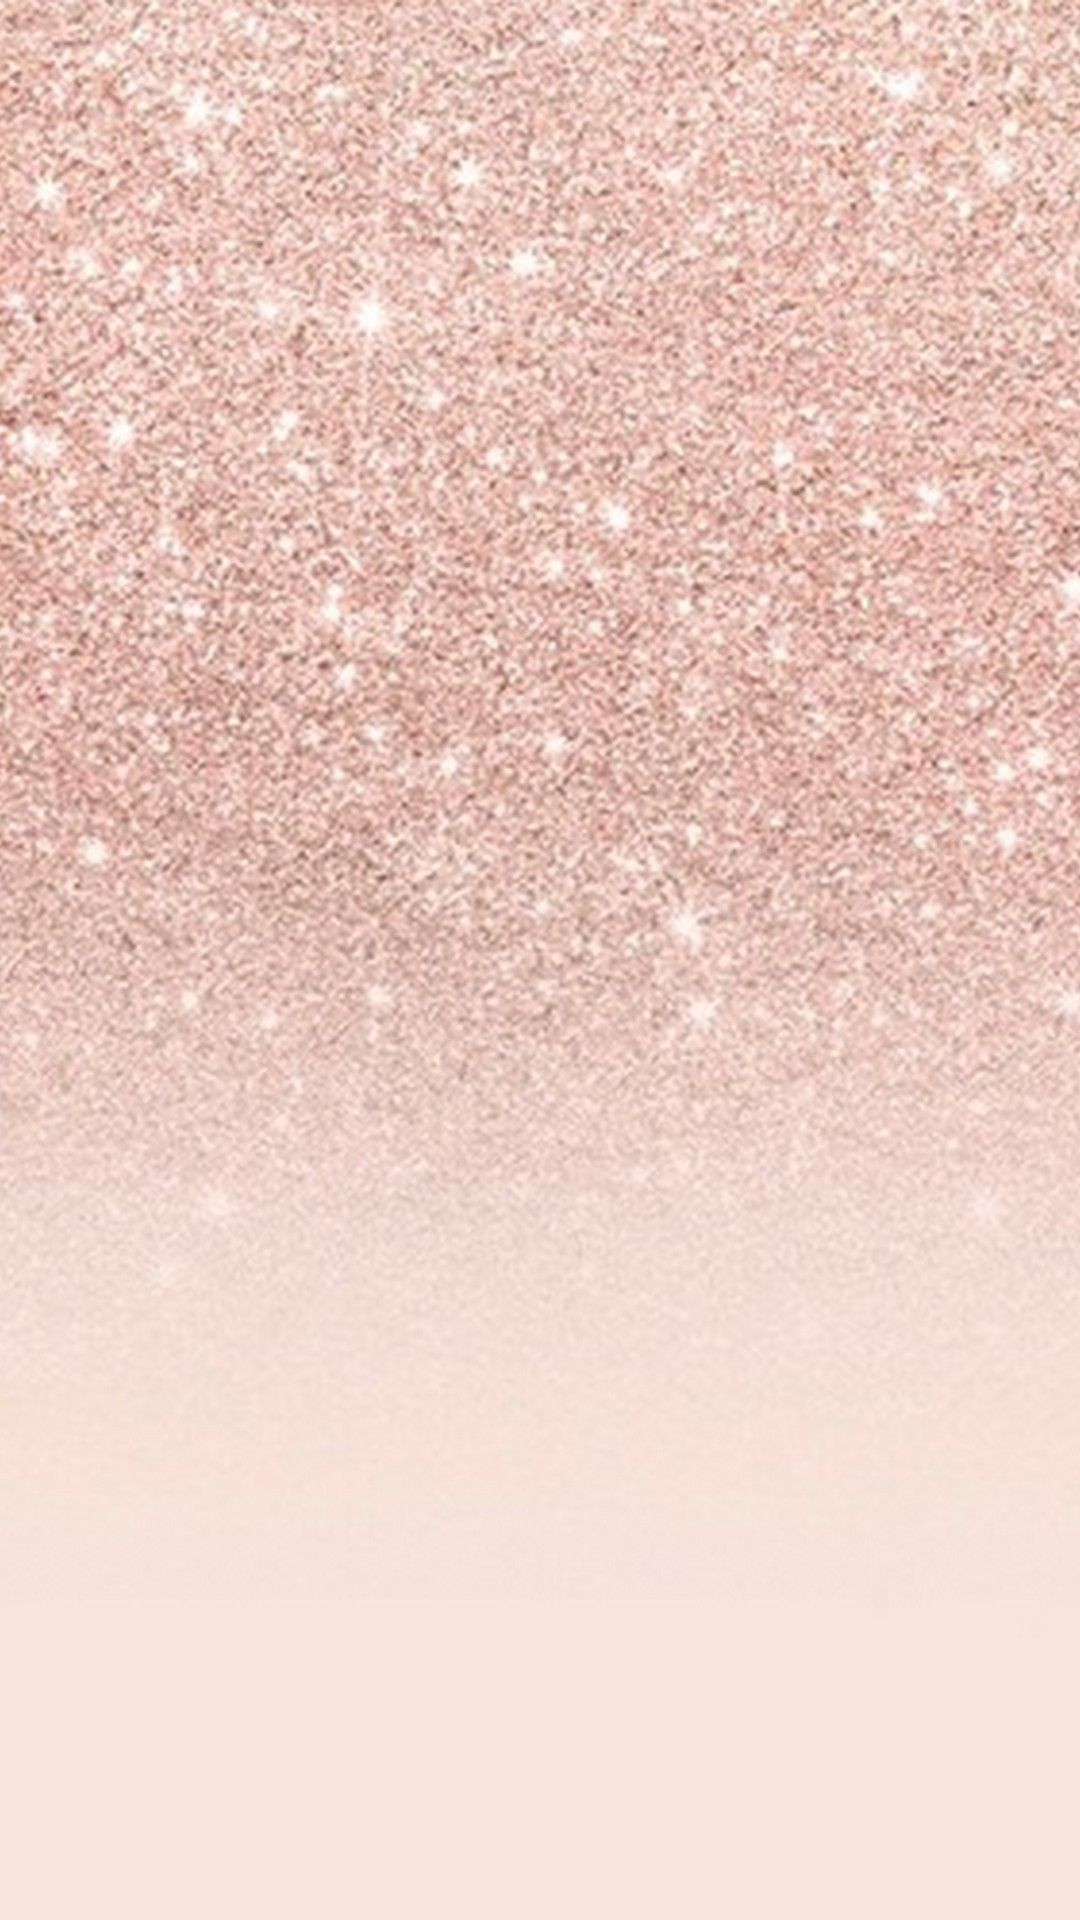 1080x1920 60+ Gold Glitter Ombre Wallpapers - Download at WallpaperBro